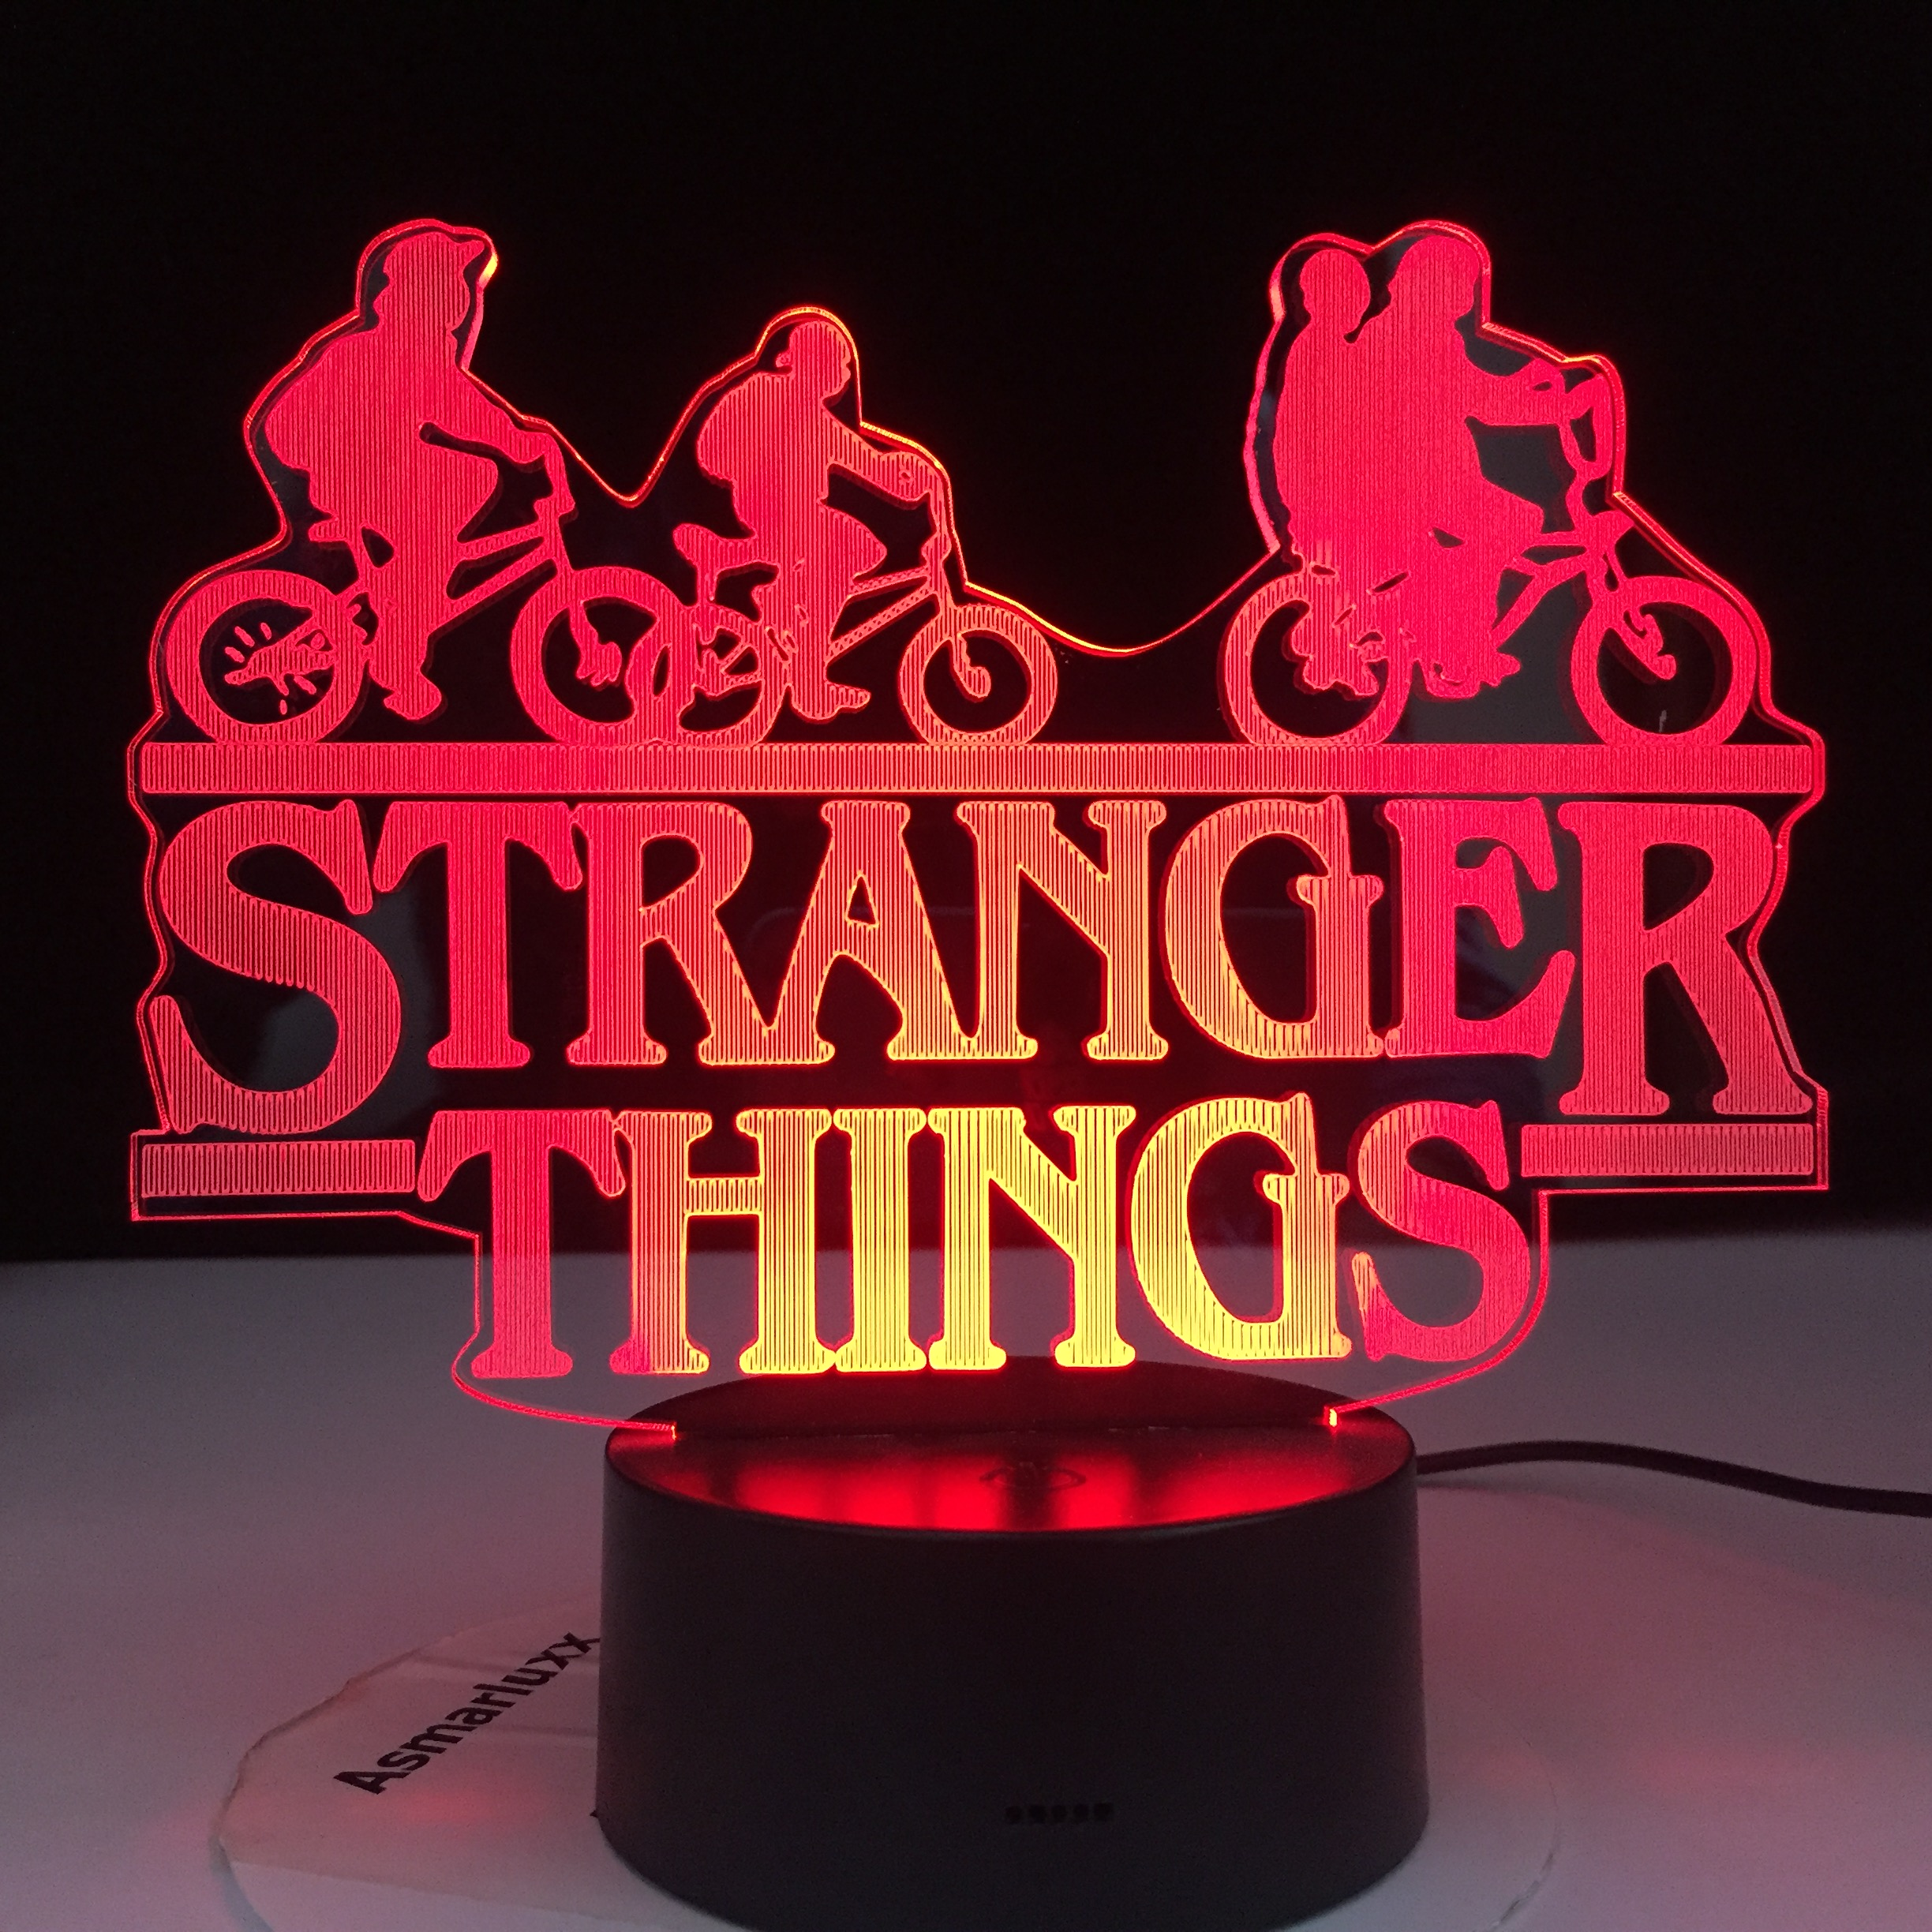 Stranger Things American Web Television Series Led Night Light 7 Colors Changing Touch Sensor Bedroom Nightlight Table Lamp Gift